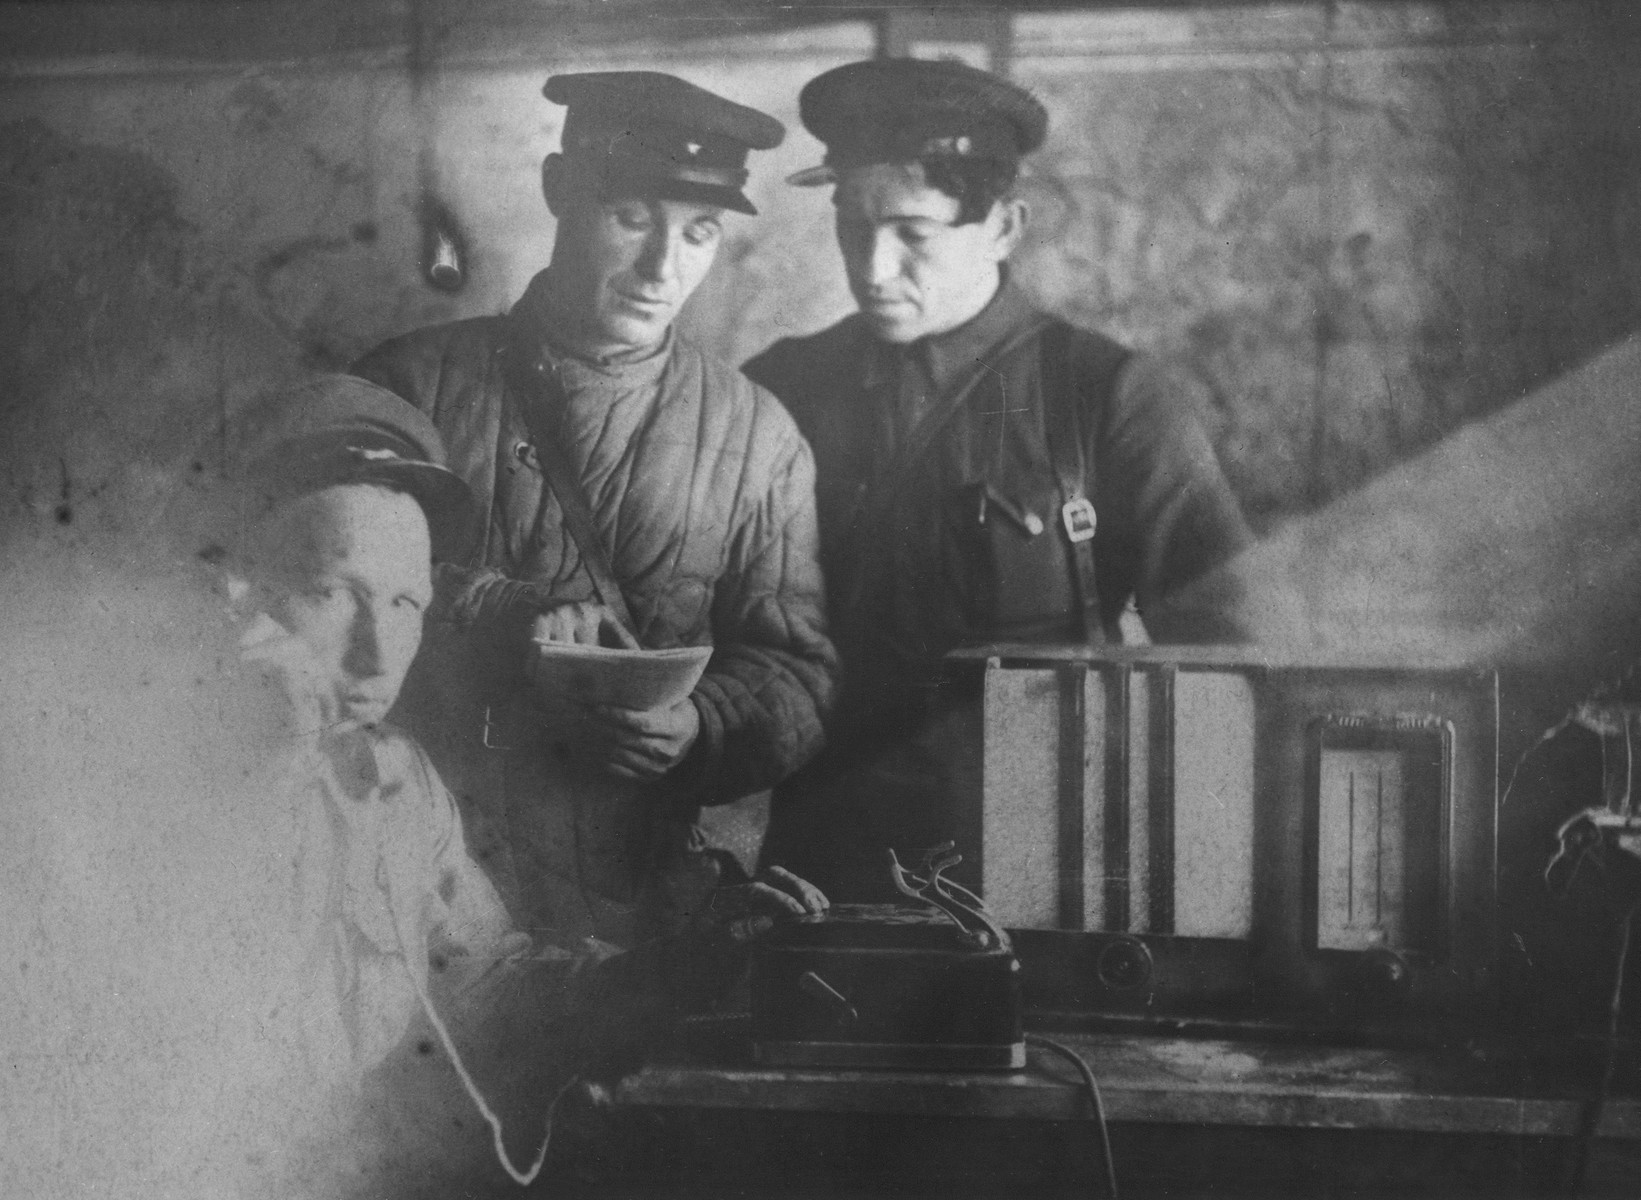 Vasiliy Nikitich Semyonov, chief of staff of the Shish detachment of the Molotov partisan brigade, makes a telephone call from a partisan bunker.